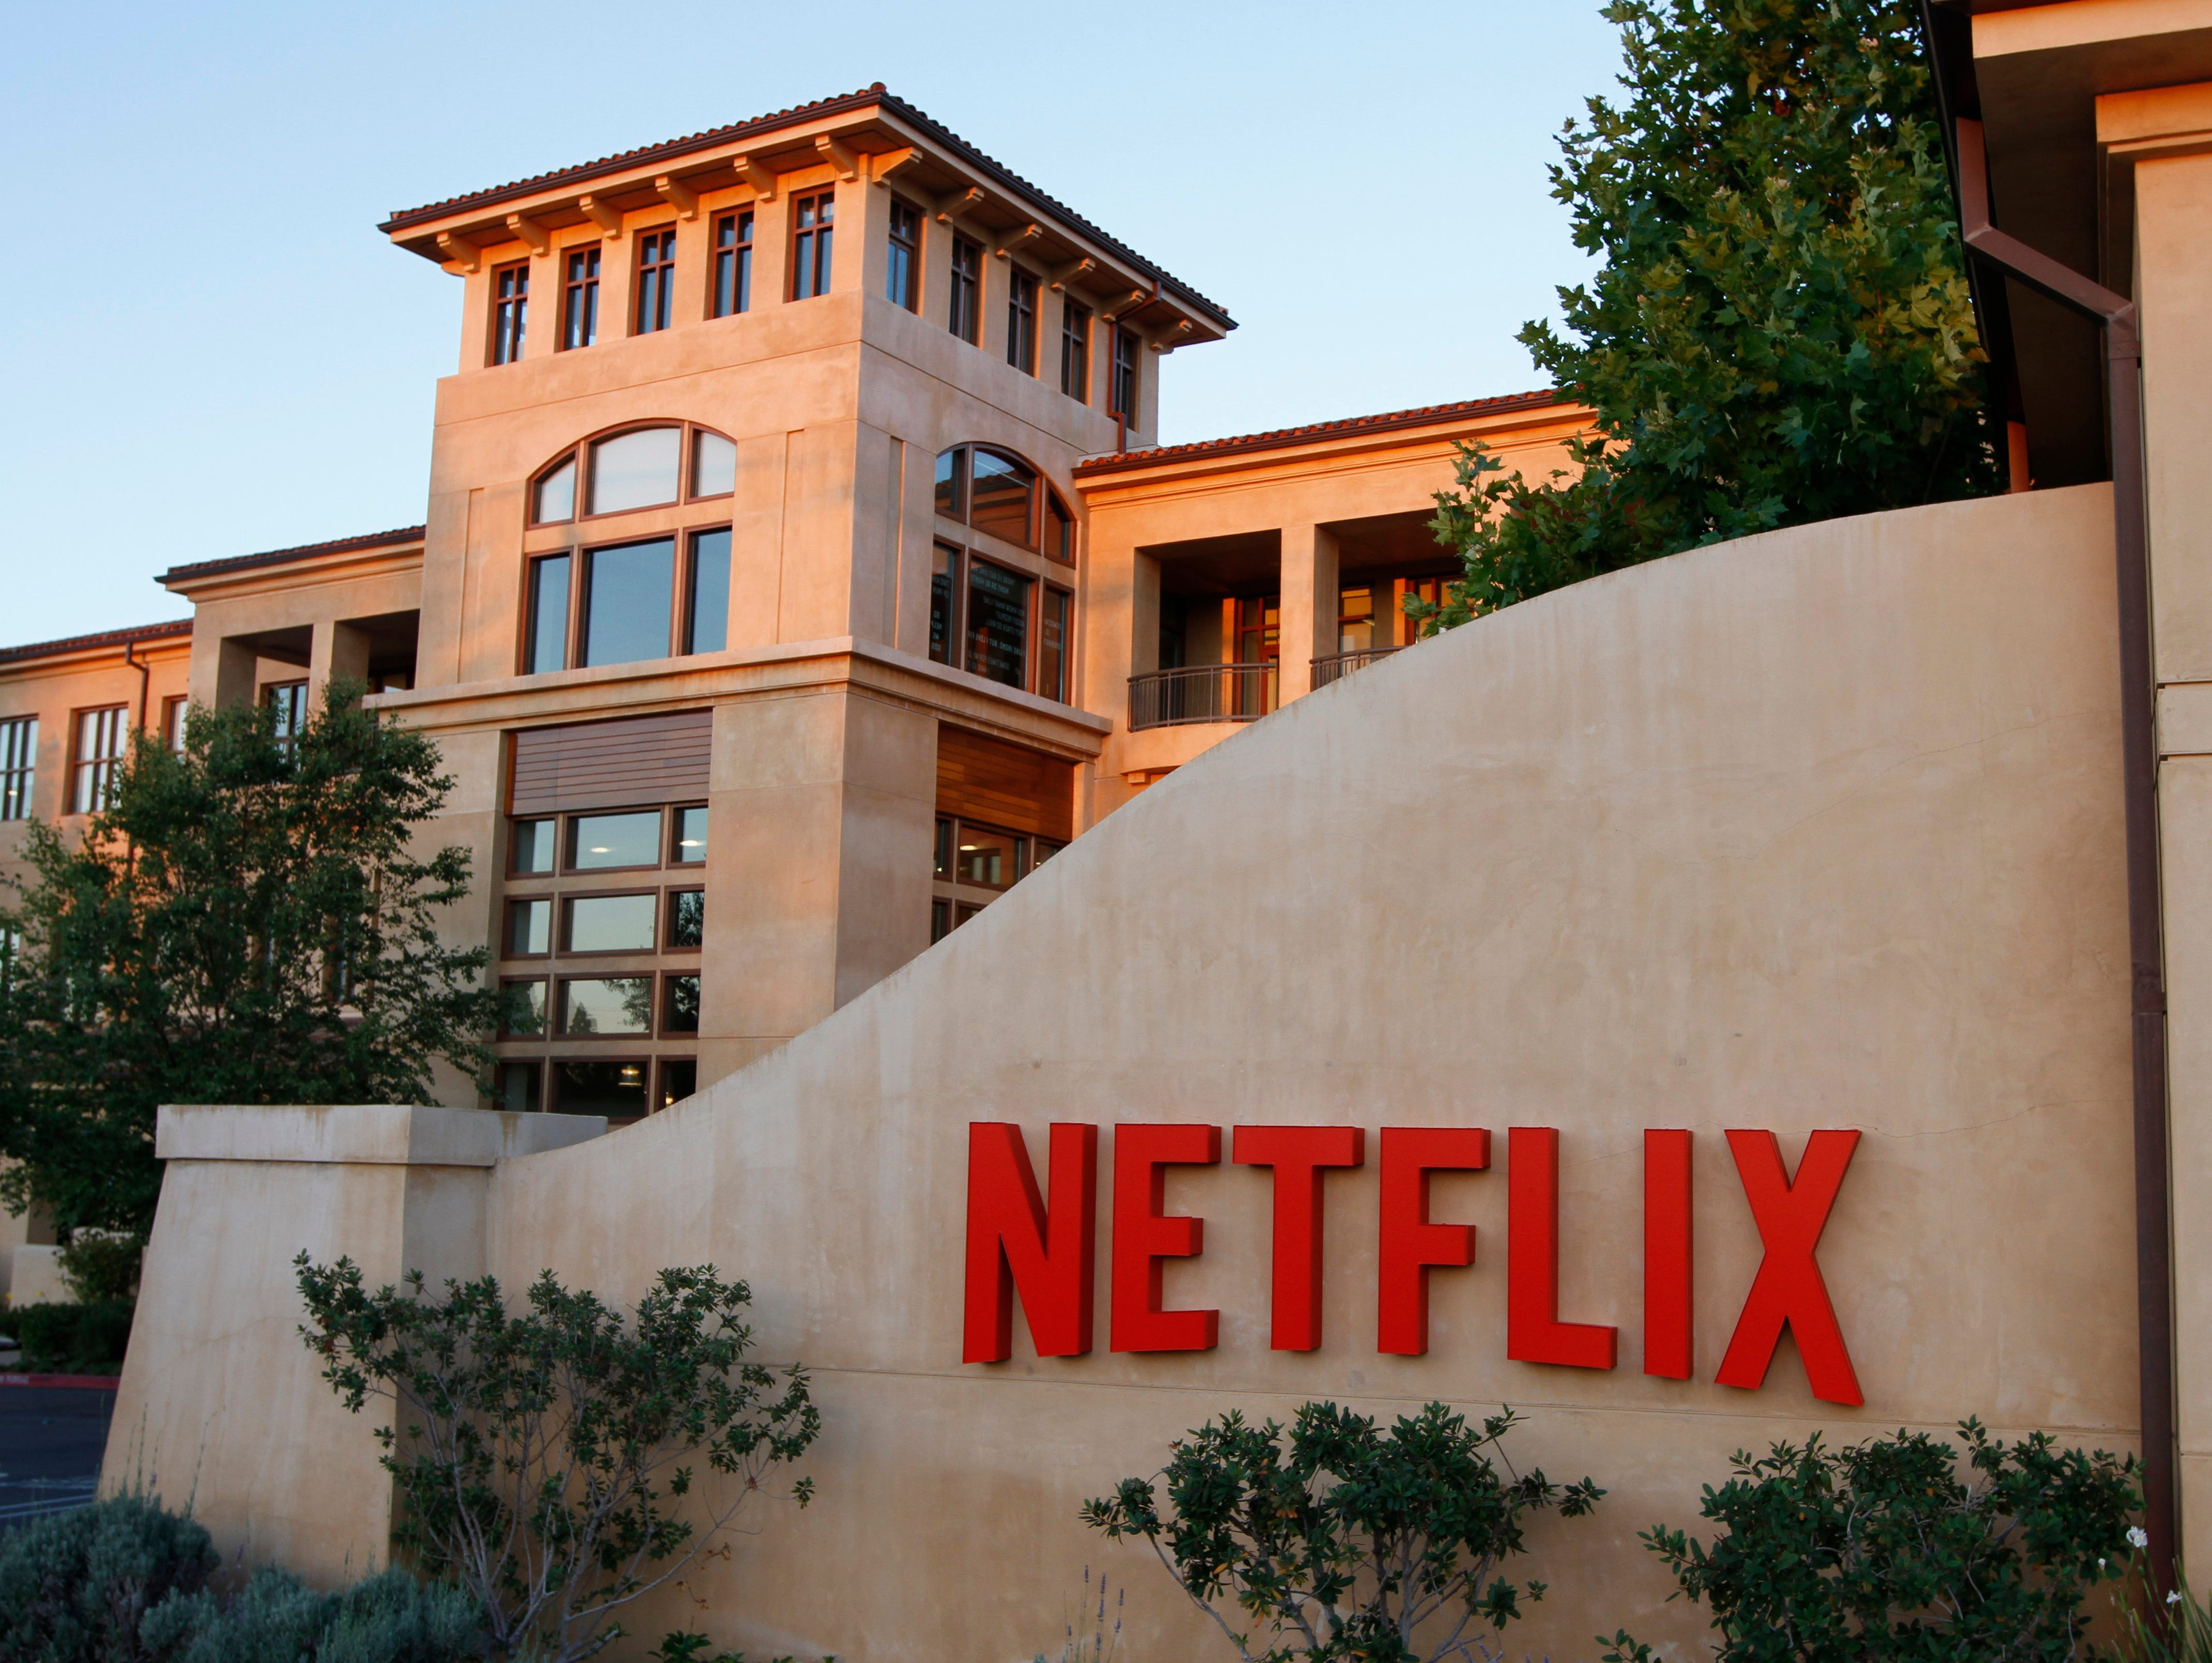 Netflix headquarters in Los Gatos, California, Tuesday, July 8, 2014.